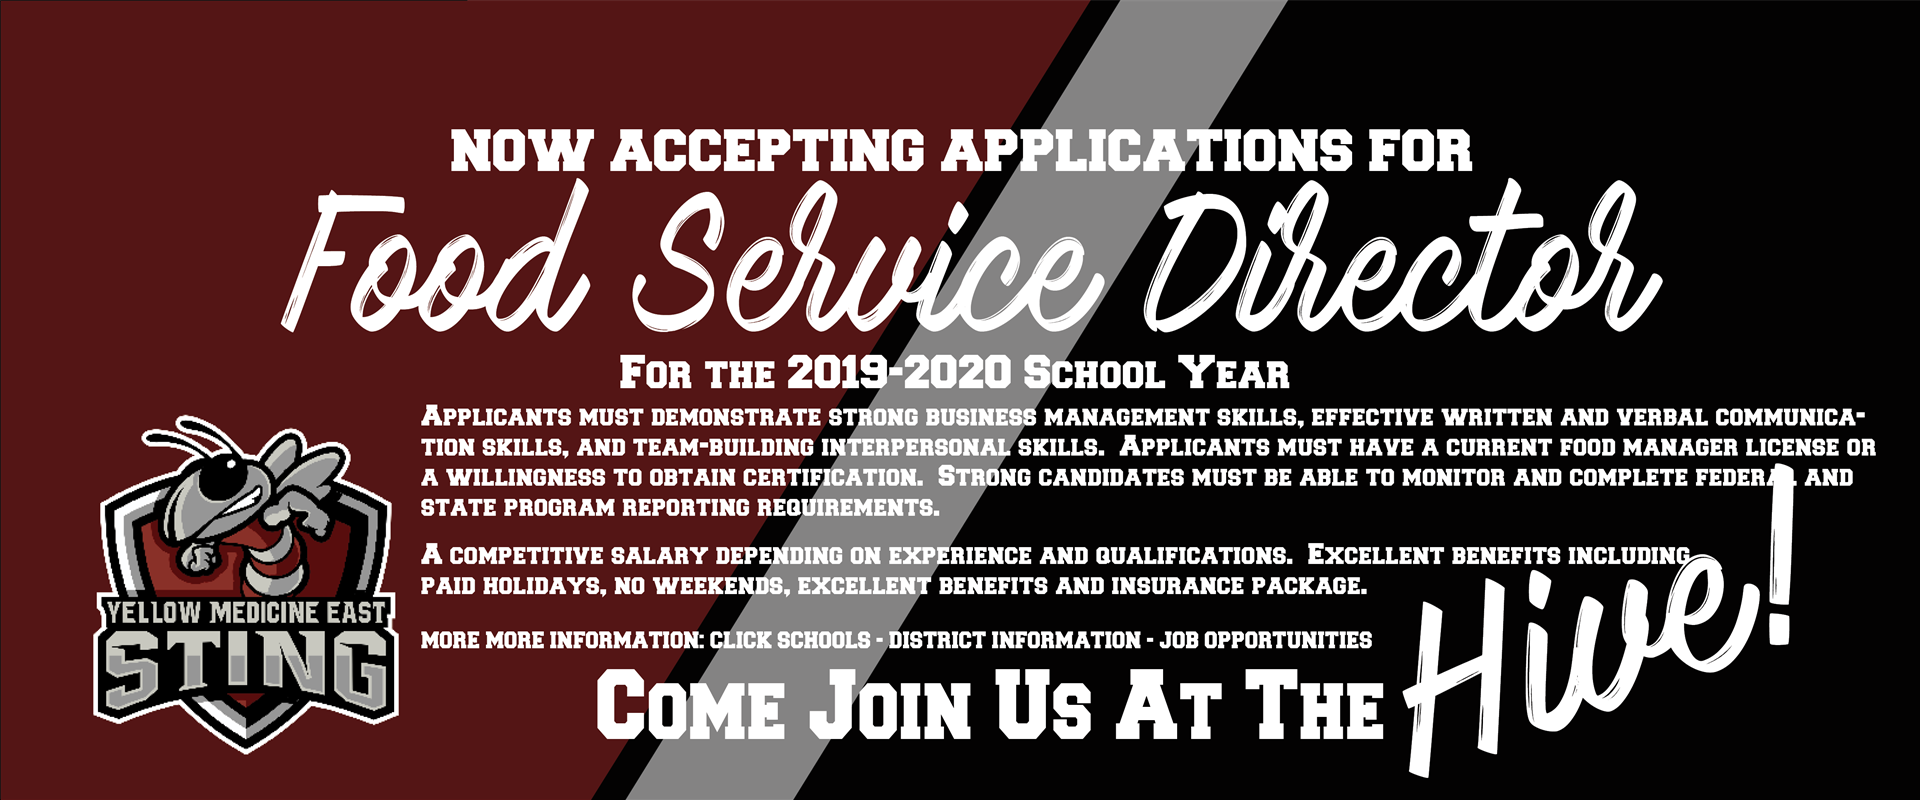 Now Hiring for a Food Service Director for the 2019-2020 School Year!